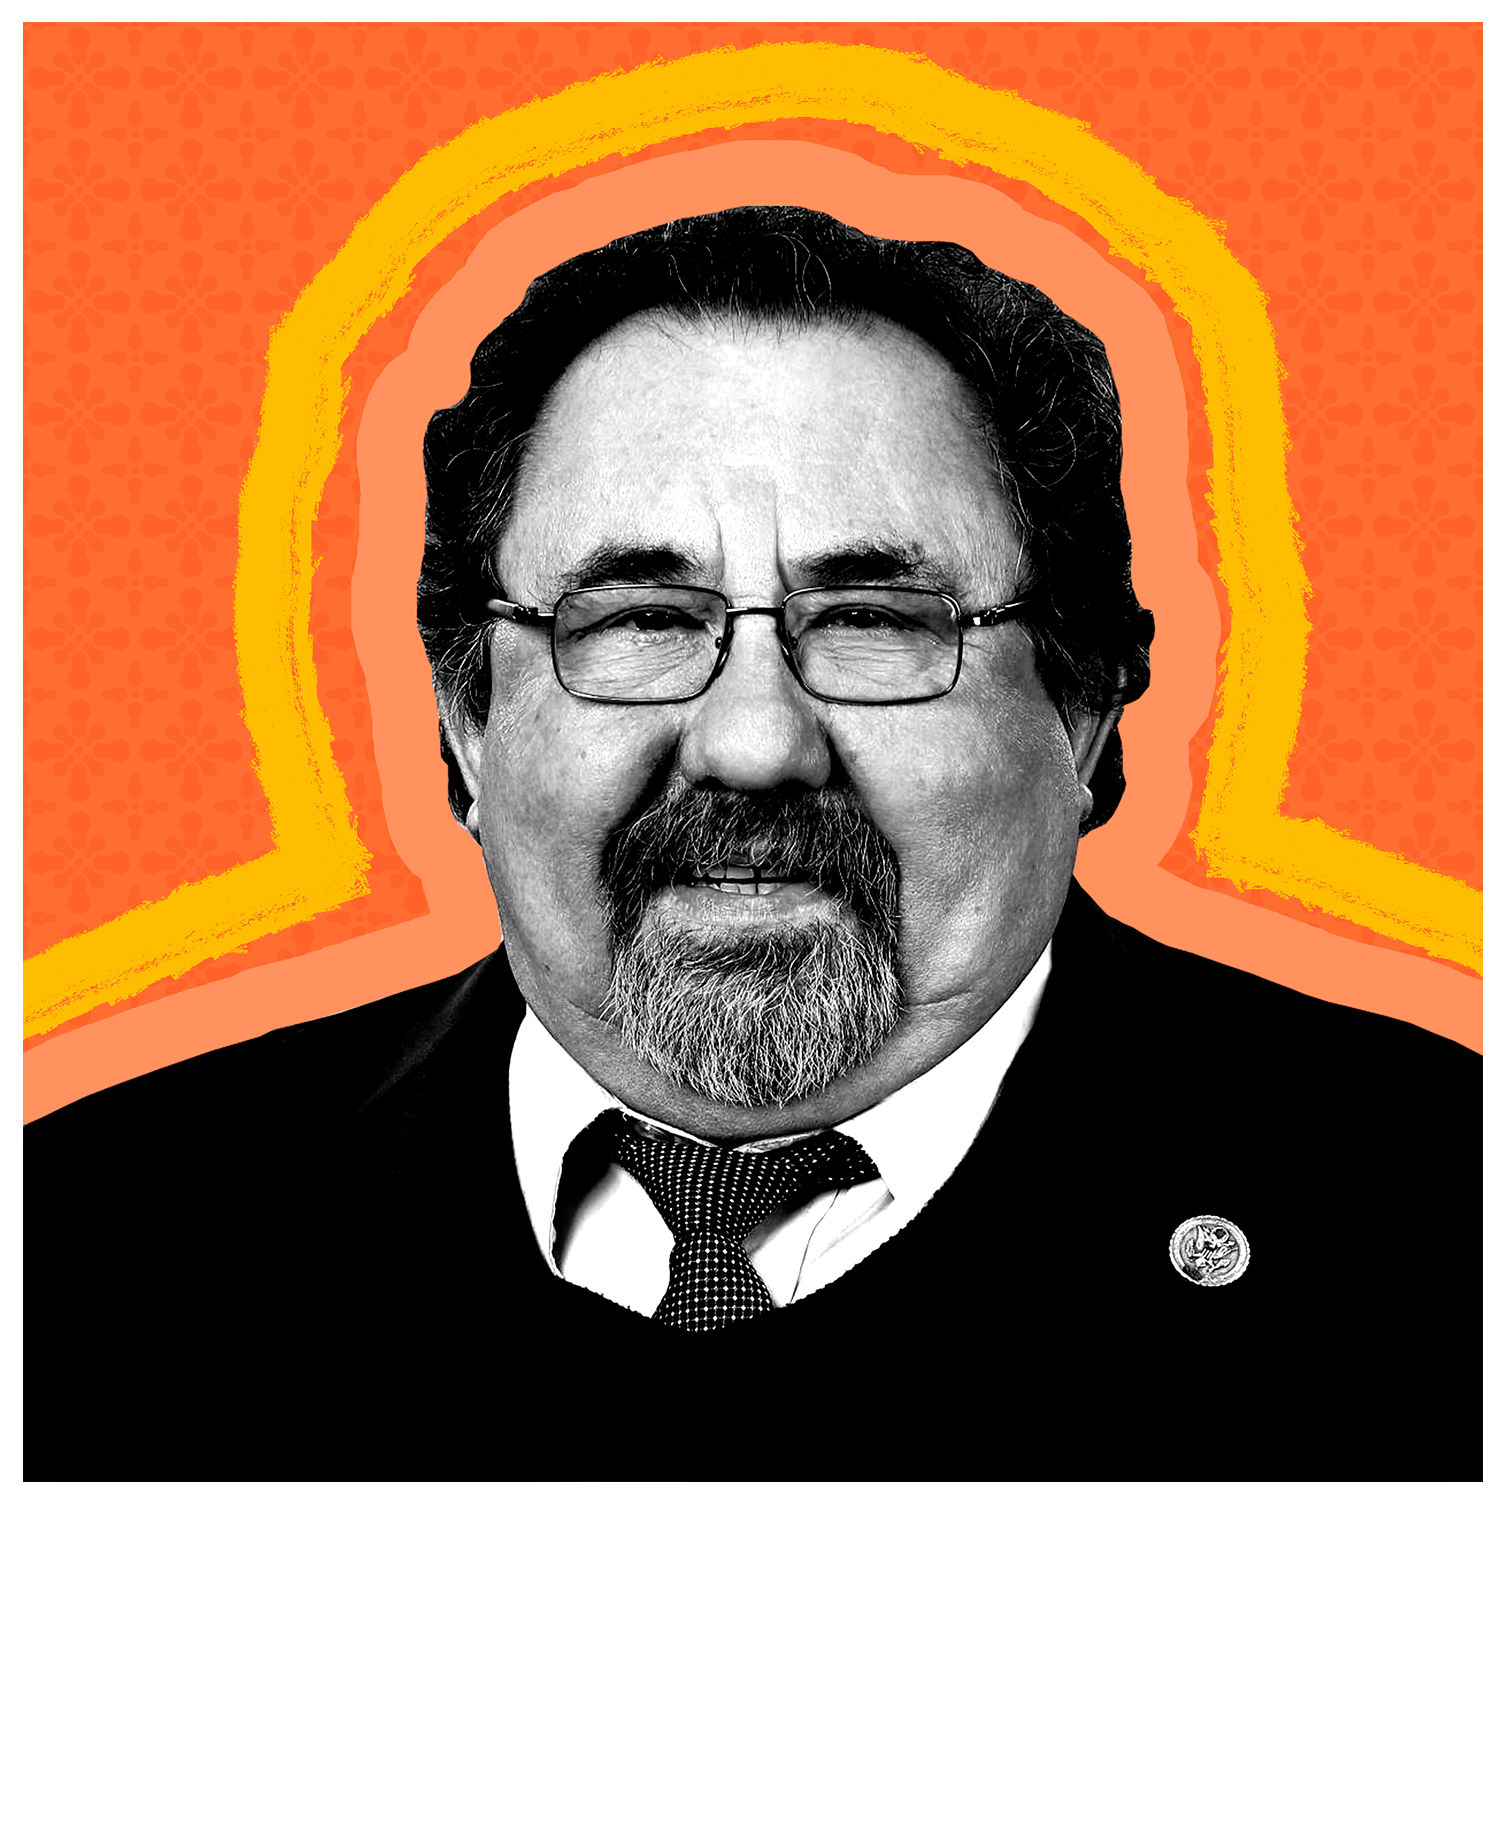 08262019---UWDA-Endorsement-Graphic-RaulGrijalva-Slide-v2